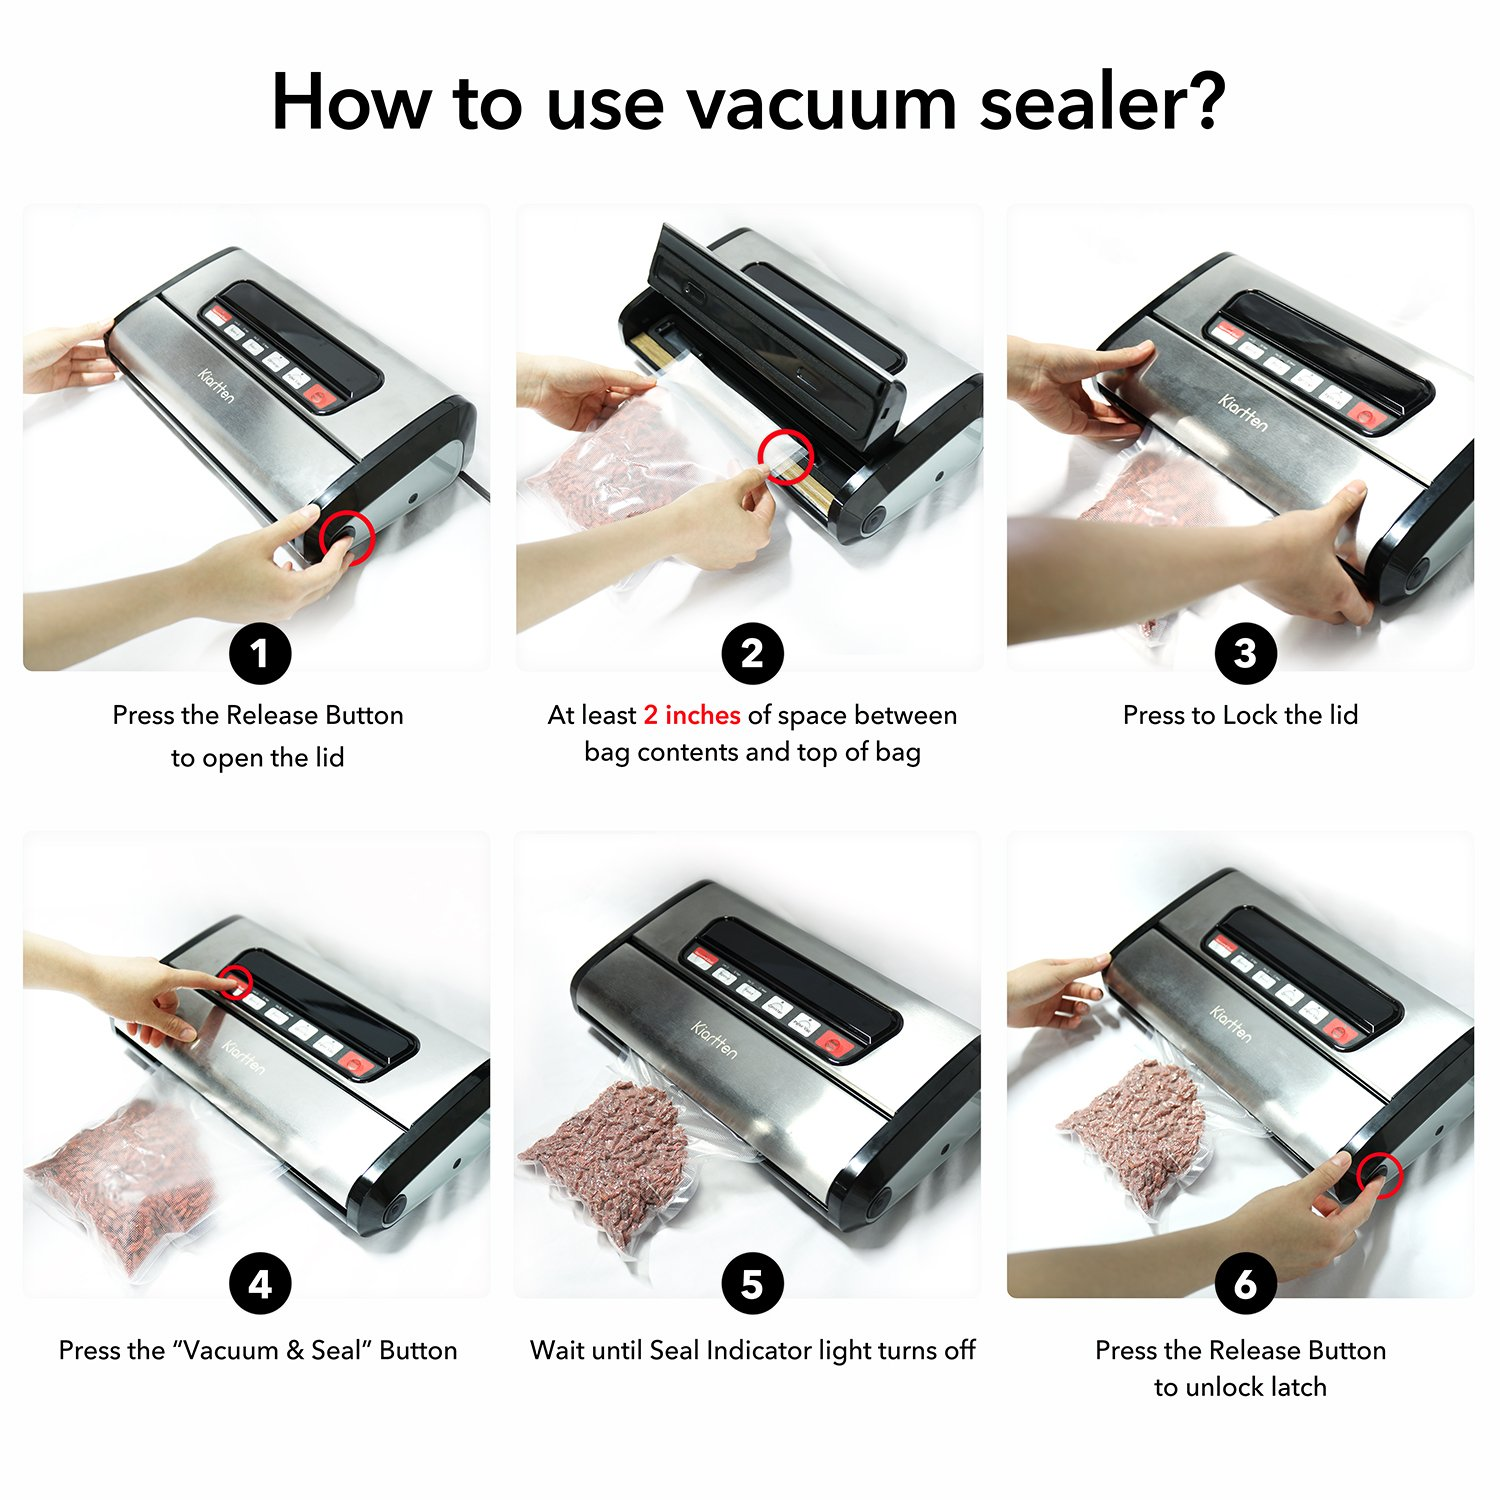 Kiartten Vacuum Sealer, A Fresh Food Locker for Your Kitchen. Keeps Food Fresh Up To 5X Longer. (Stainless Steel) by Spreaze (Image #4)